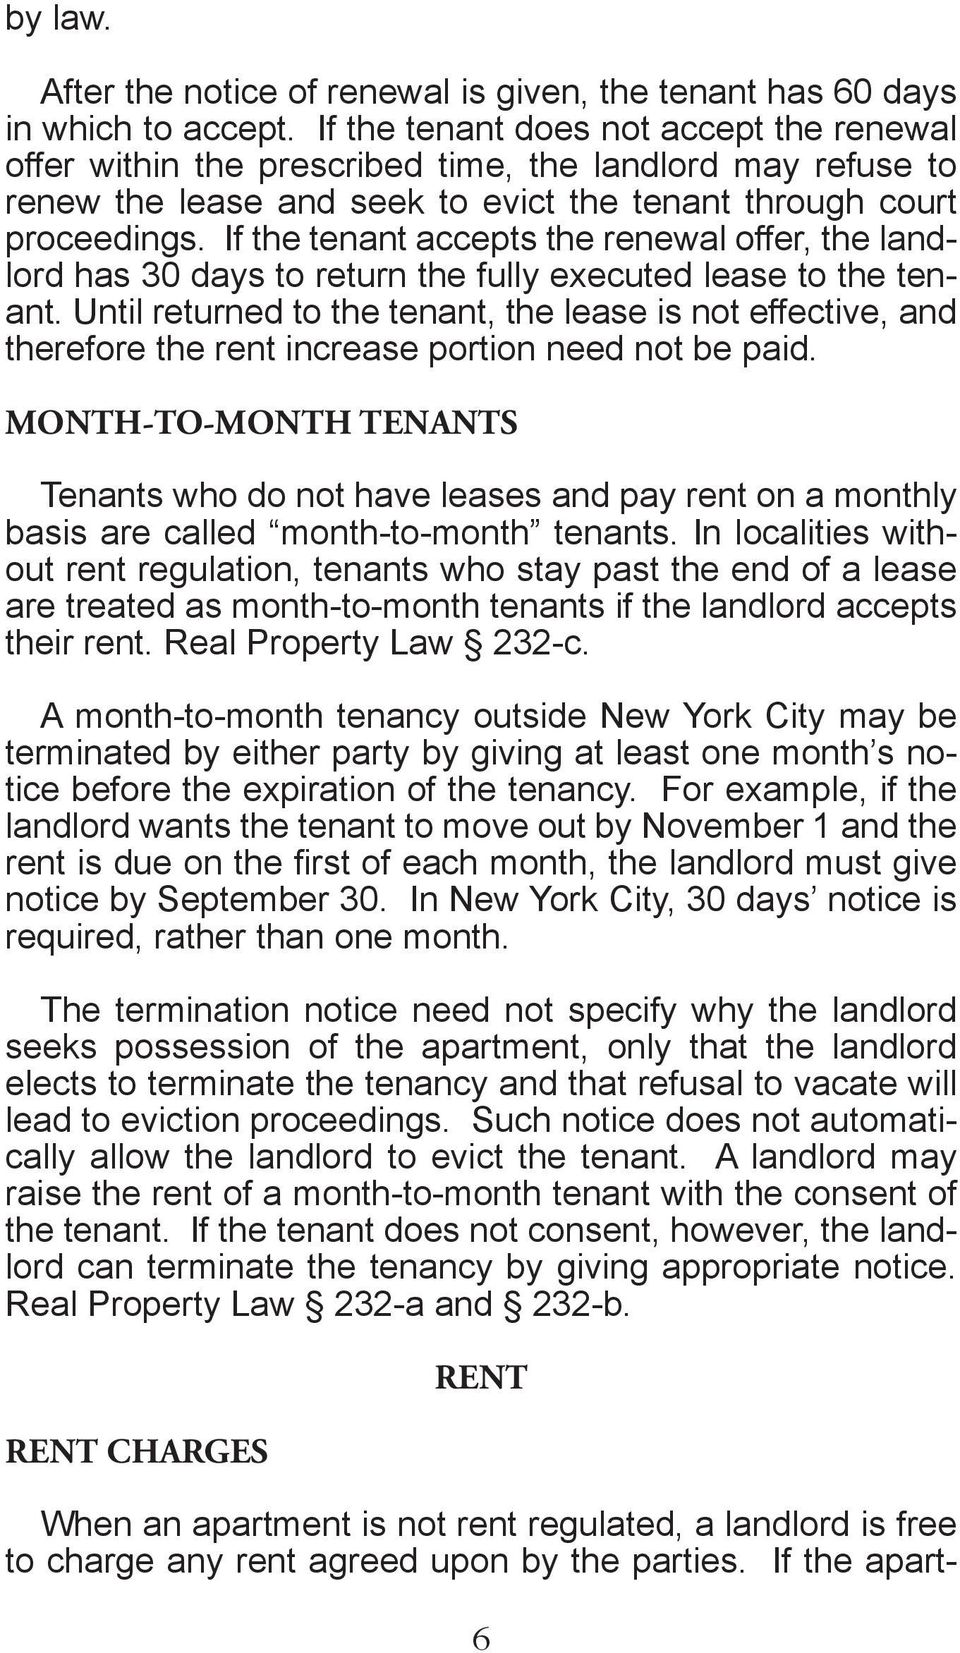 If the tenant accepts the renewal offer, the landlord has 30 days to return the fully executed lease to the tenant.